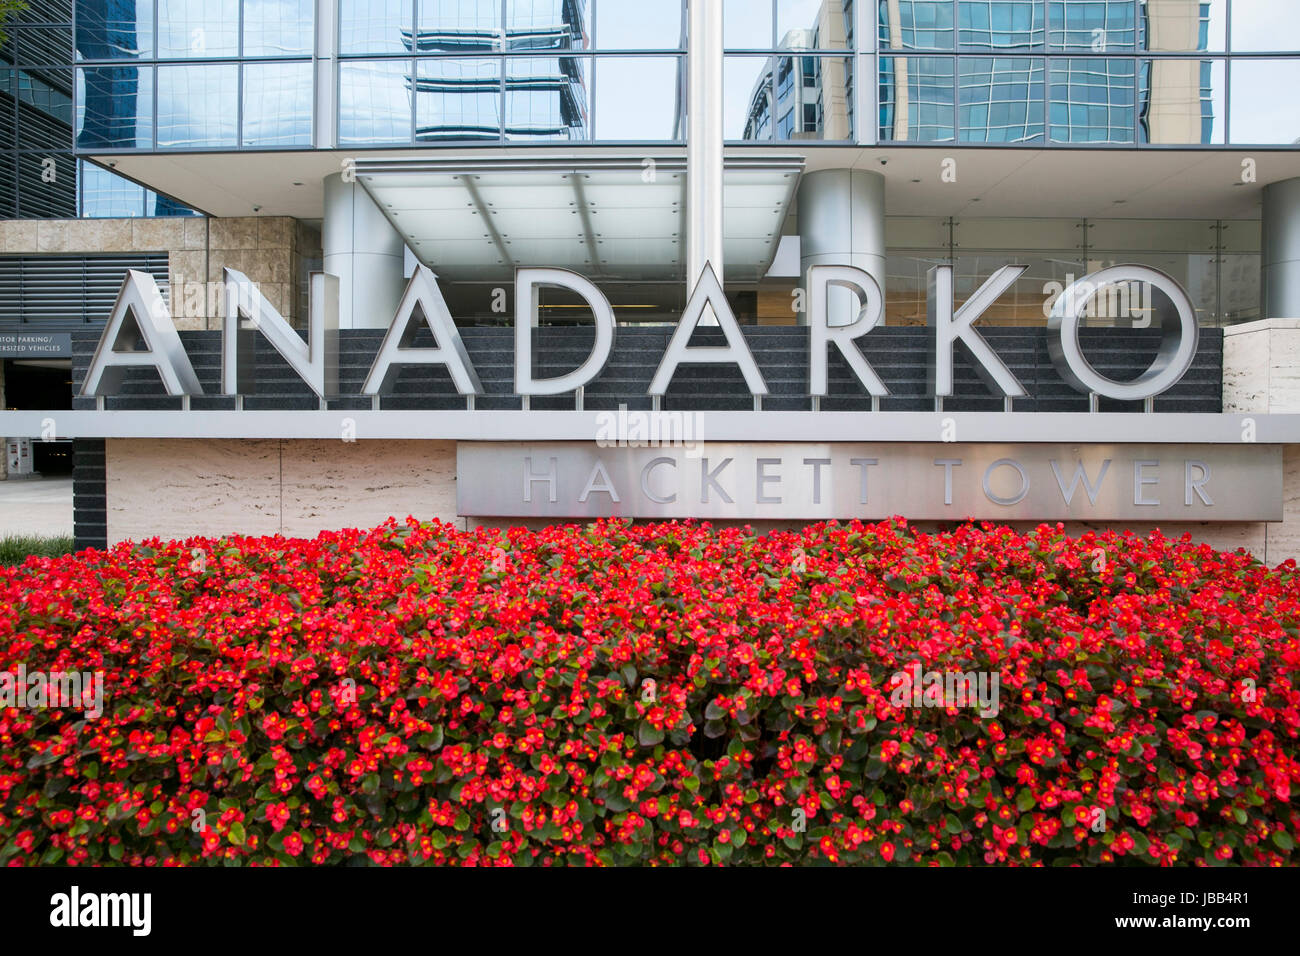 A logo sign outside of the headquarters of the Anadarko